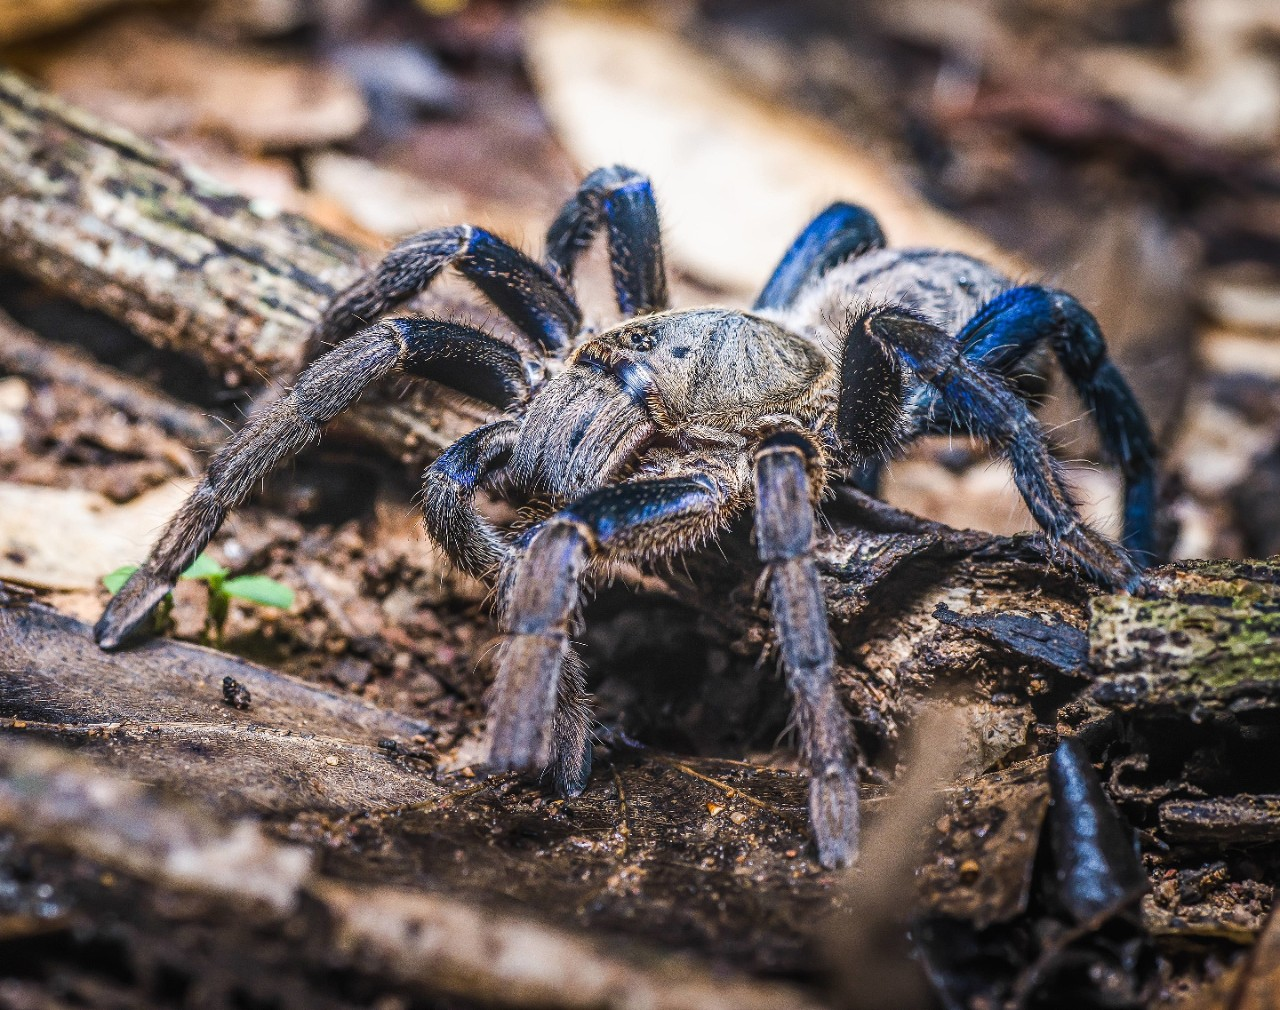 NYT: Why so blue, tarantula?